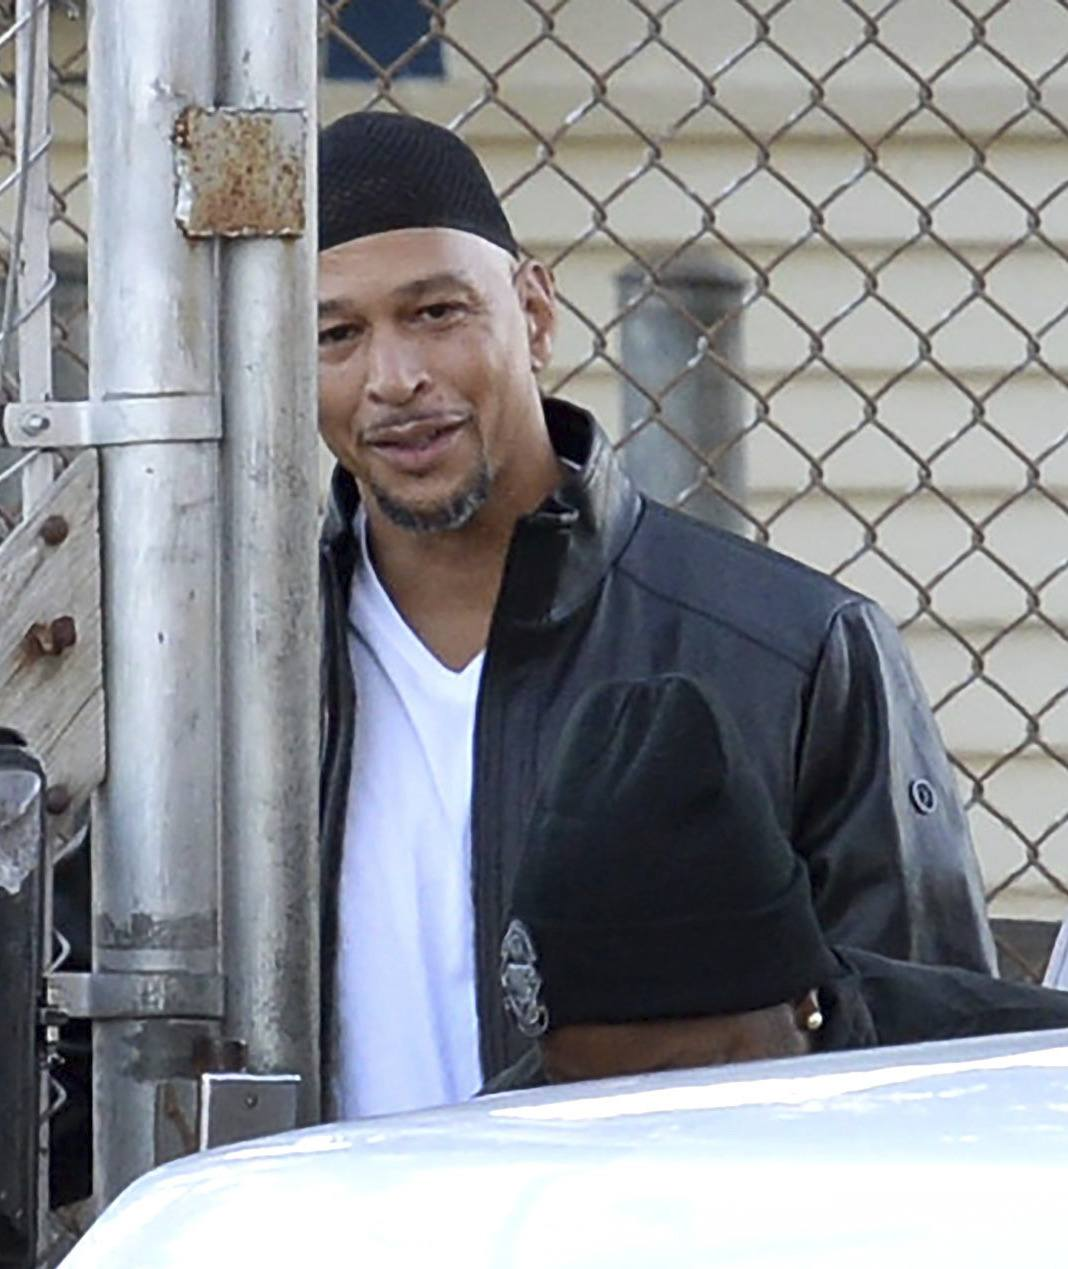 9 Rae Carruth 10 Sports Stars Who Committed Terrible Crimes